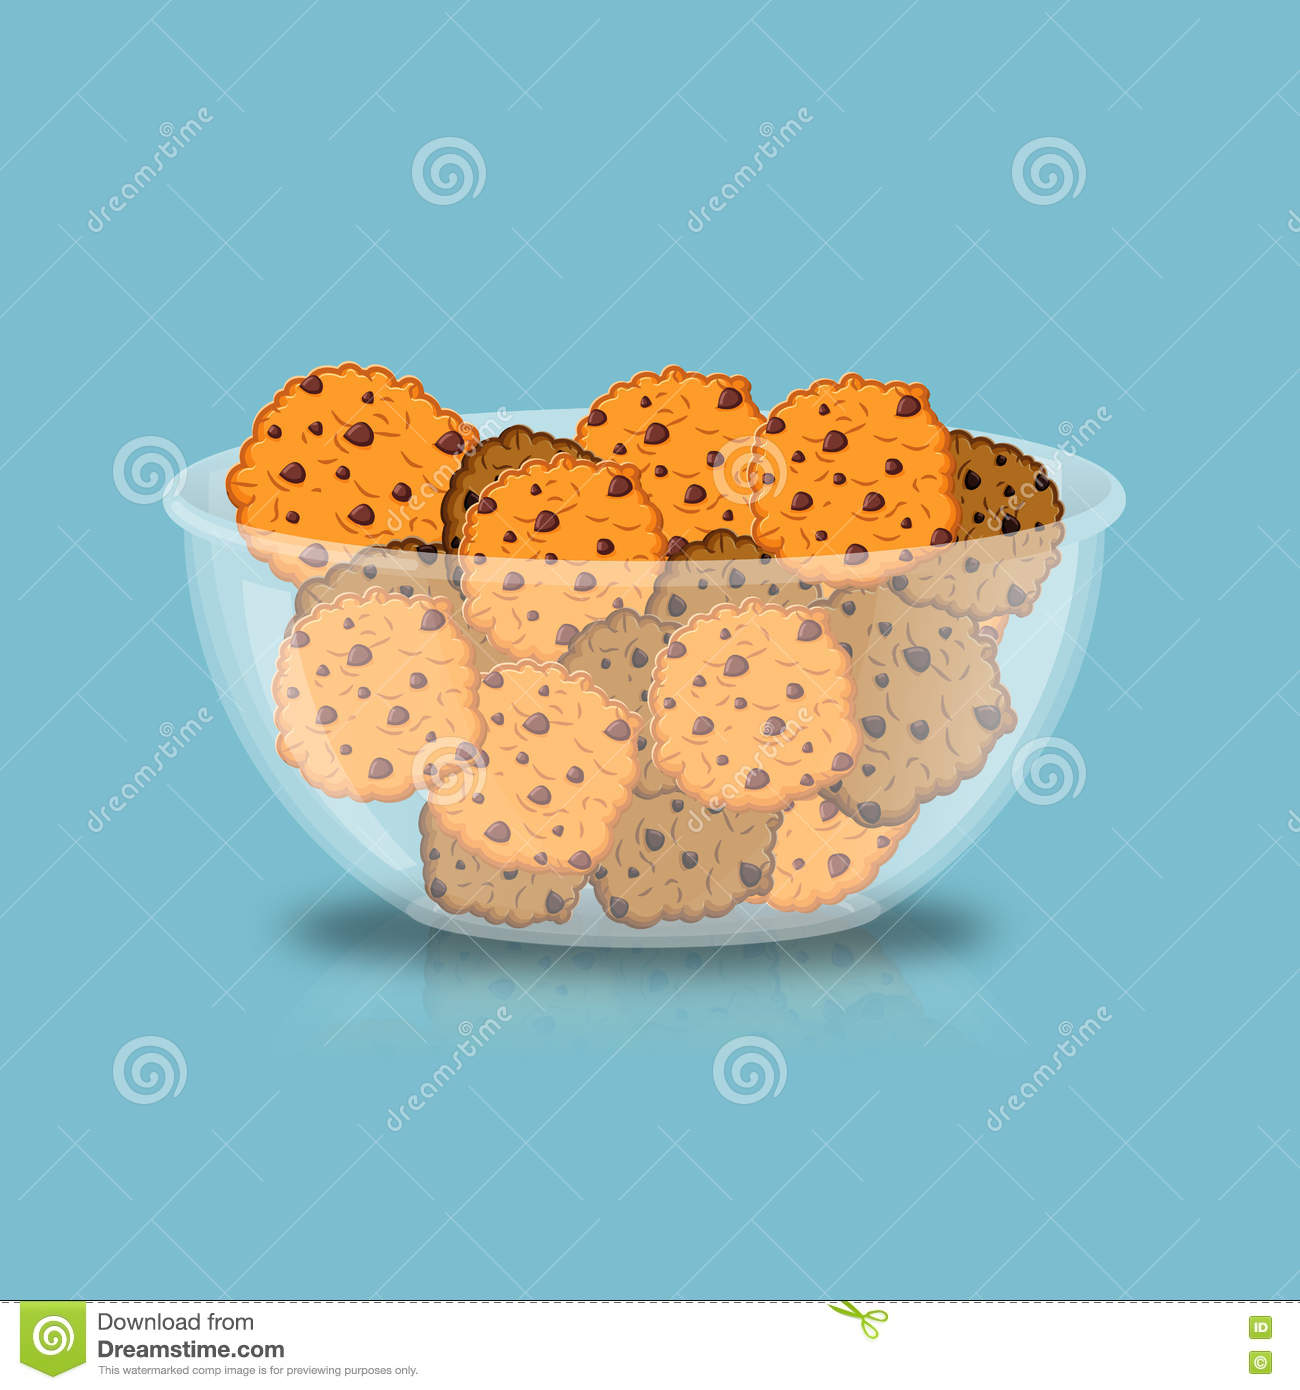 Cookies In Bowl. Biscuit In Deep Transparent Plate. Oatmeal Cook.